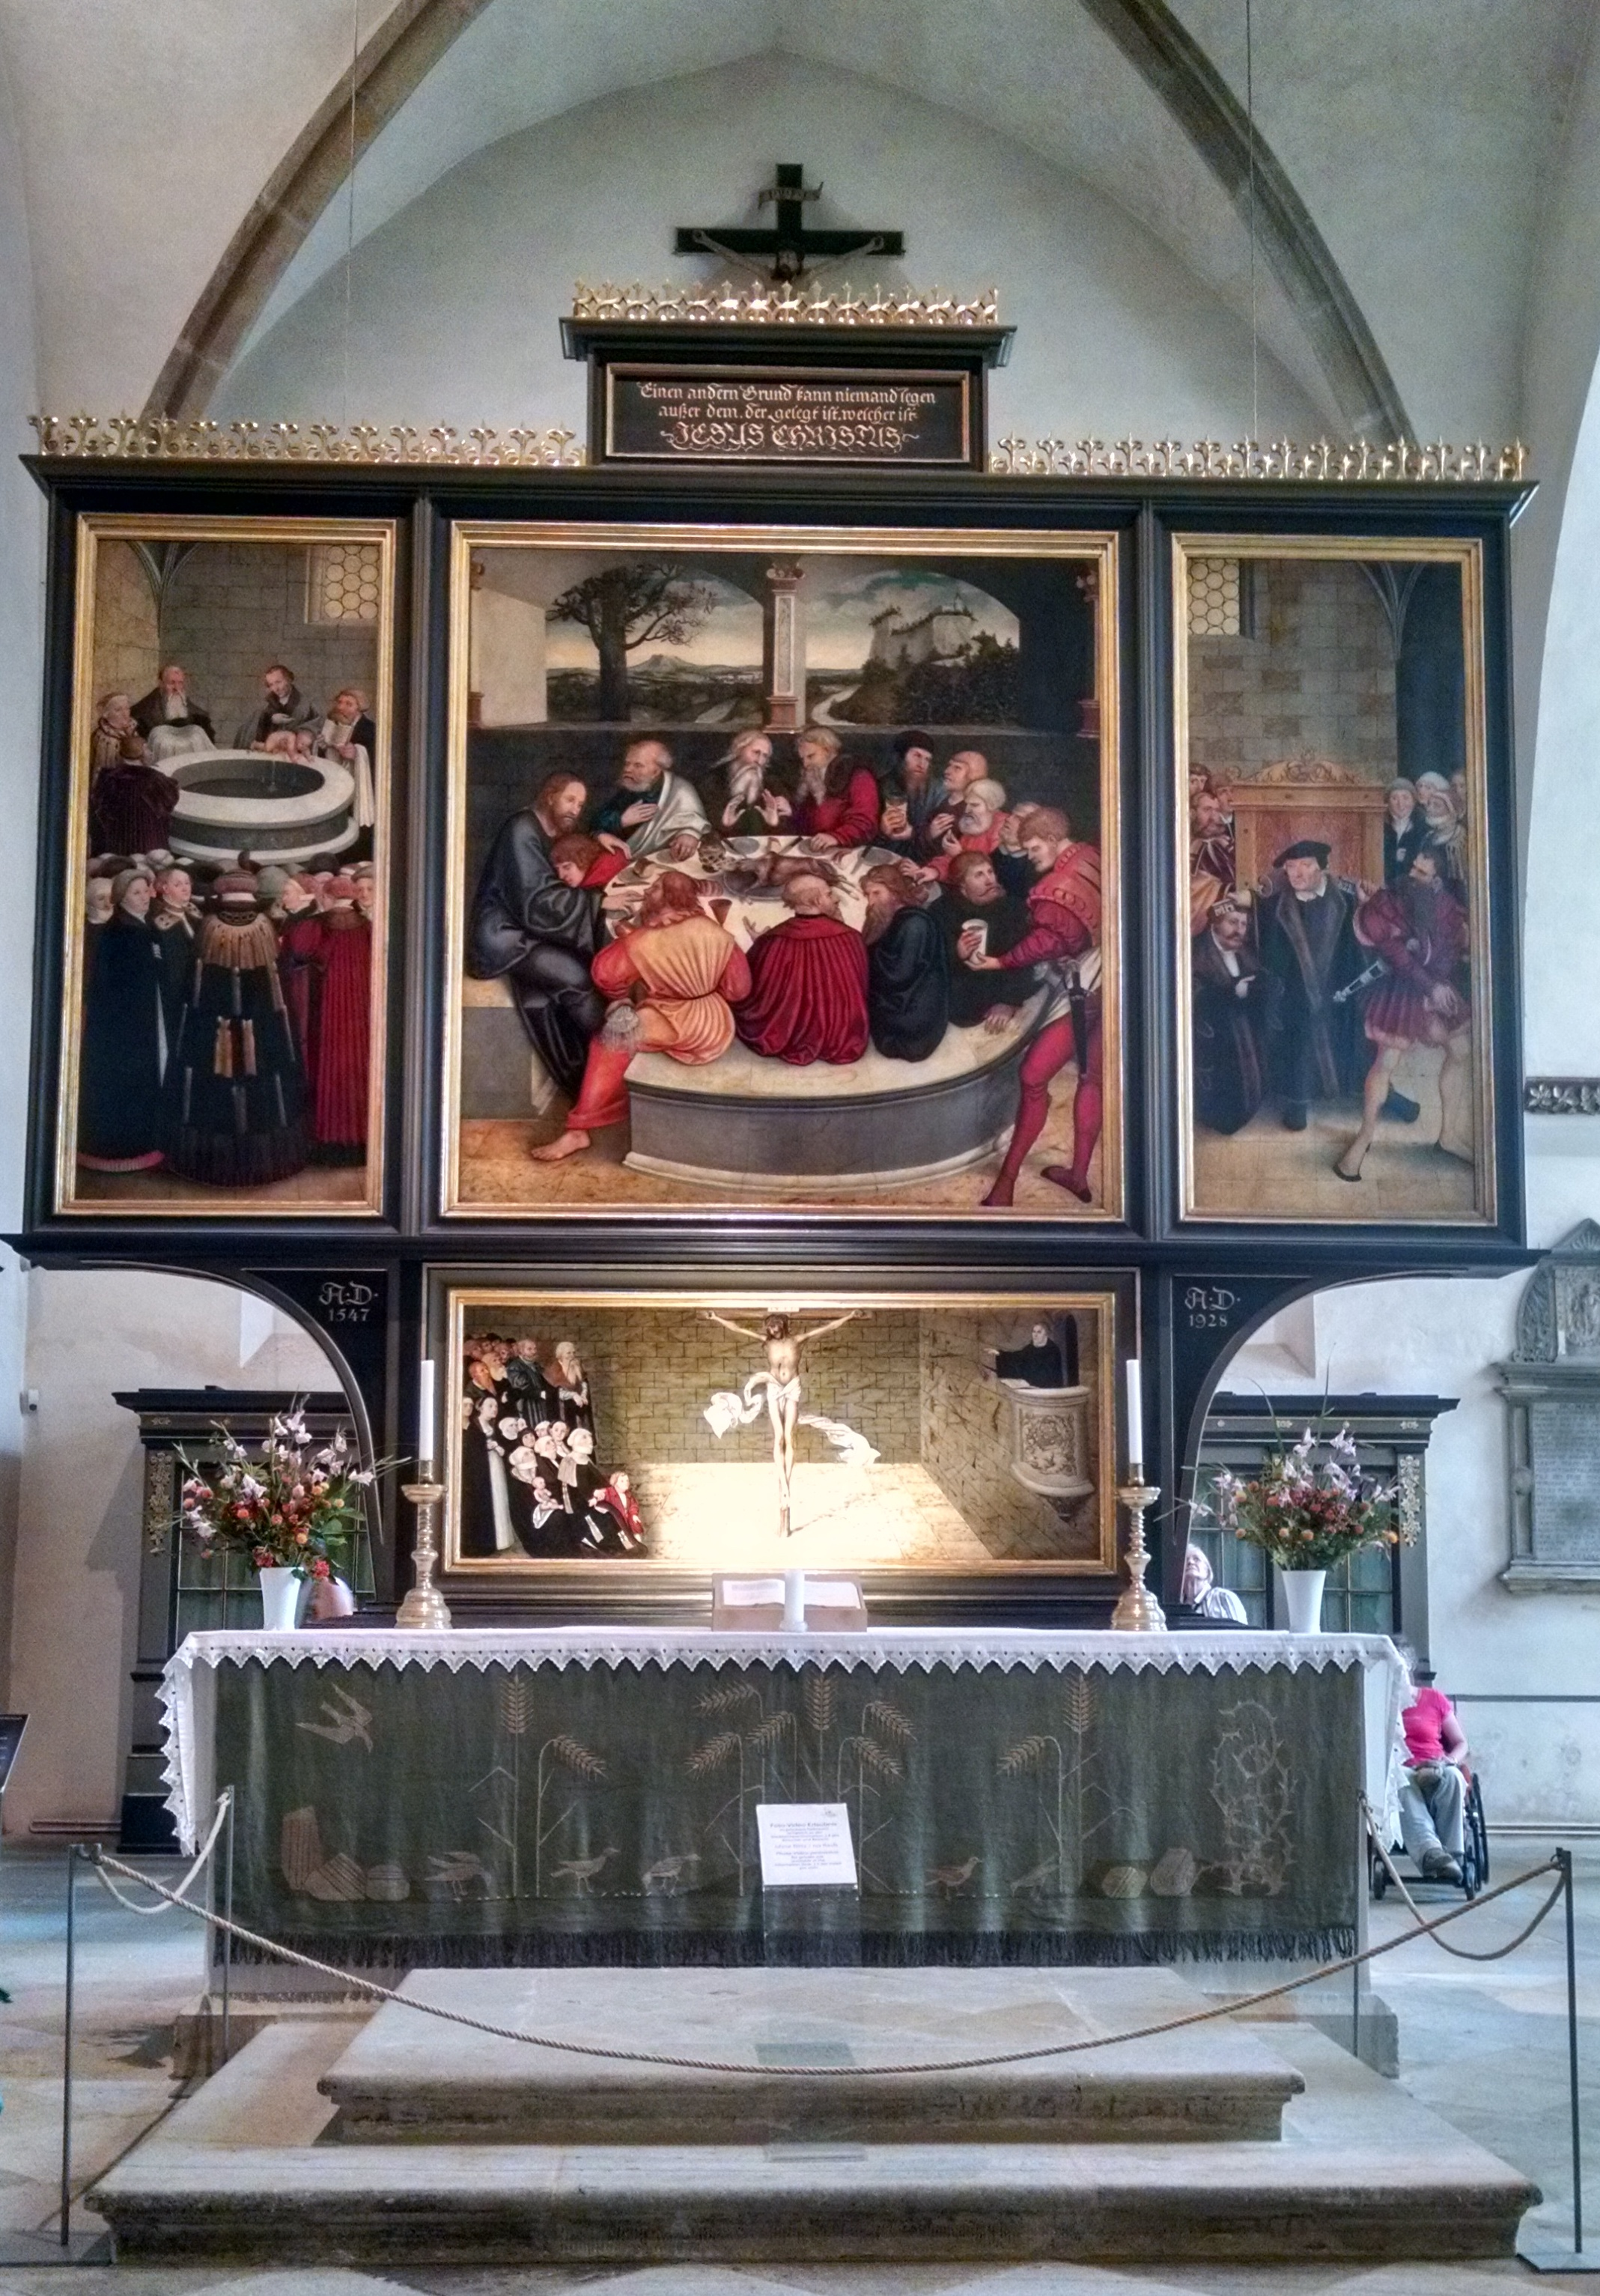 Altar of the City Church in Lutherstadt Wittenberg